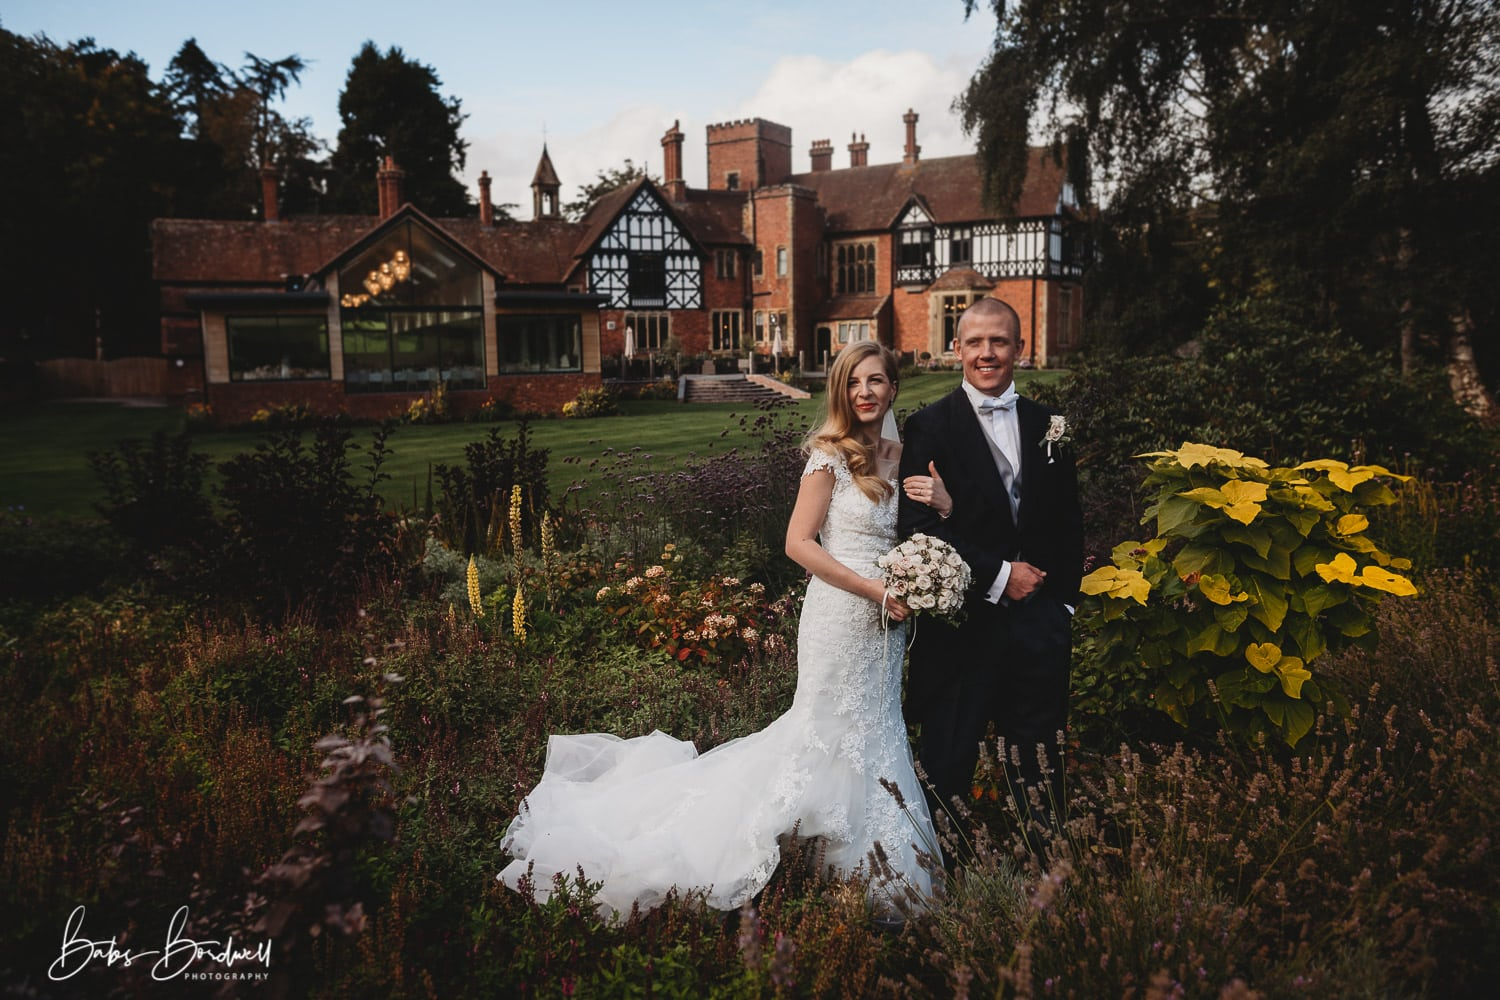 portrait of bride and groom with Tyn Dwr Hall in the background